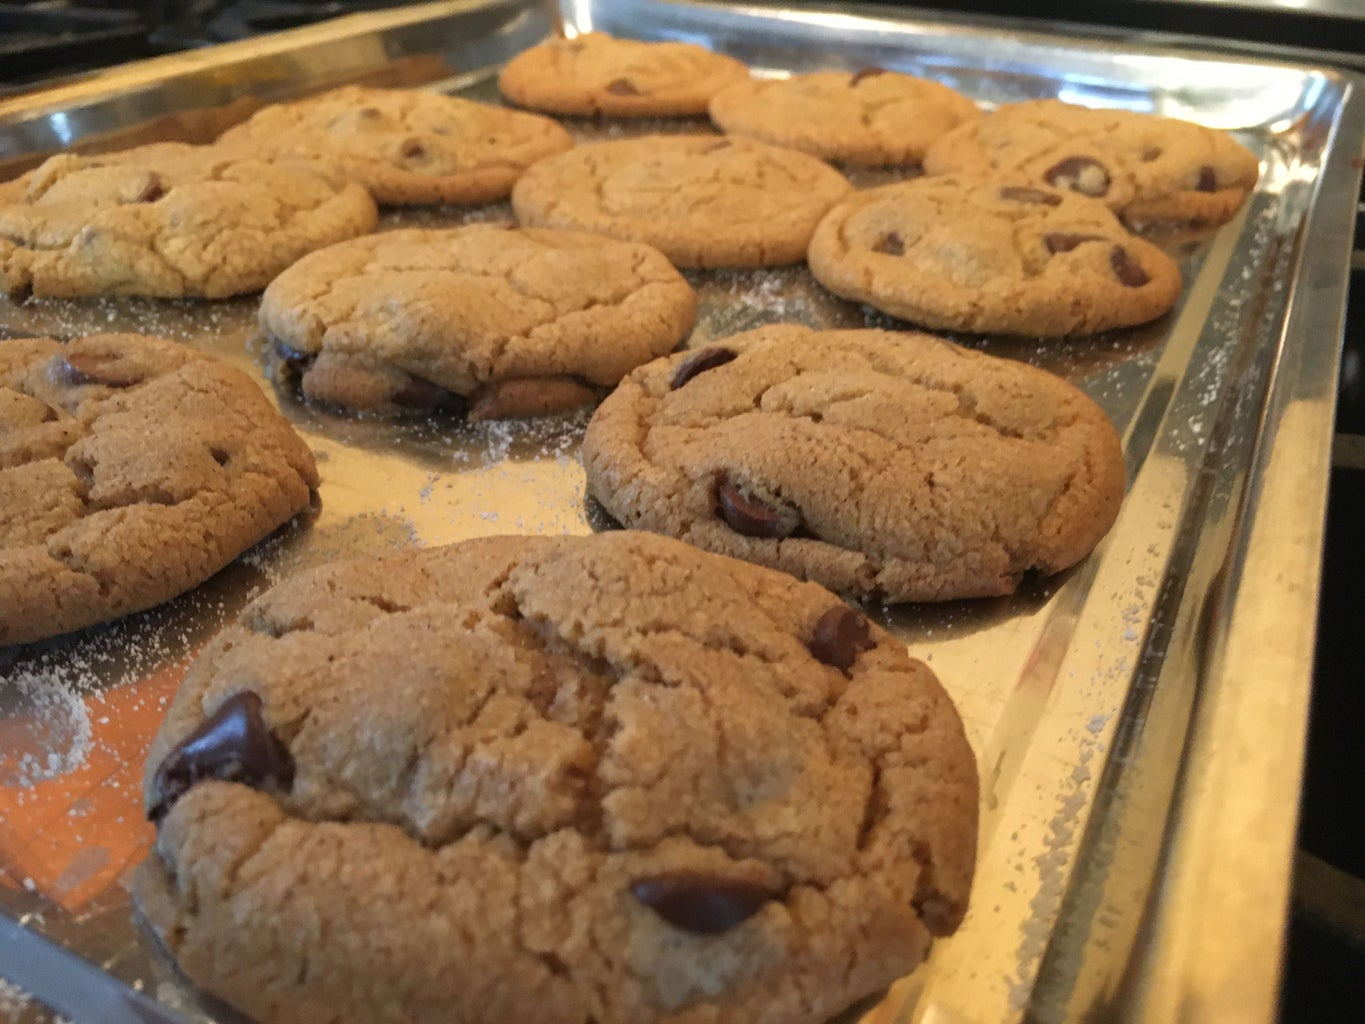 Baking and Cooling the Cookies